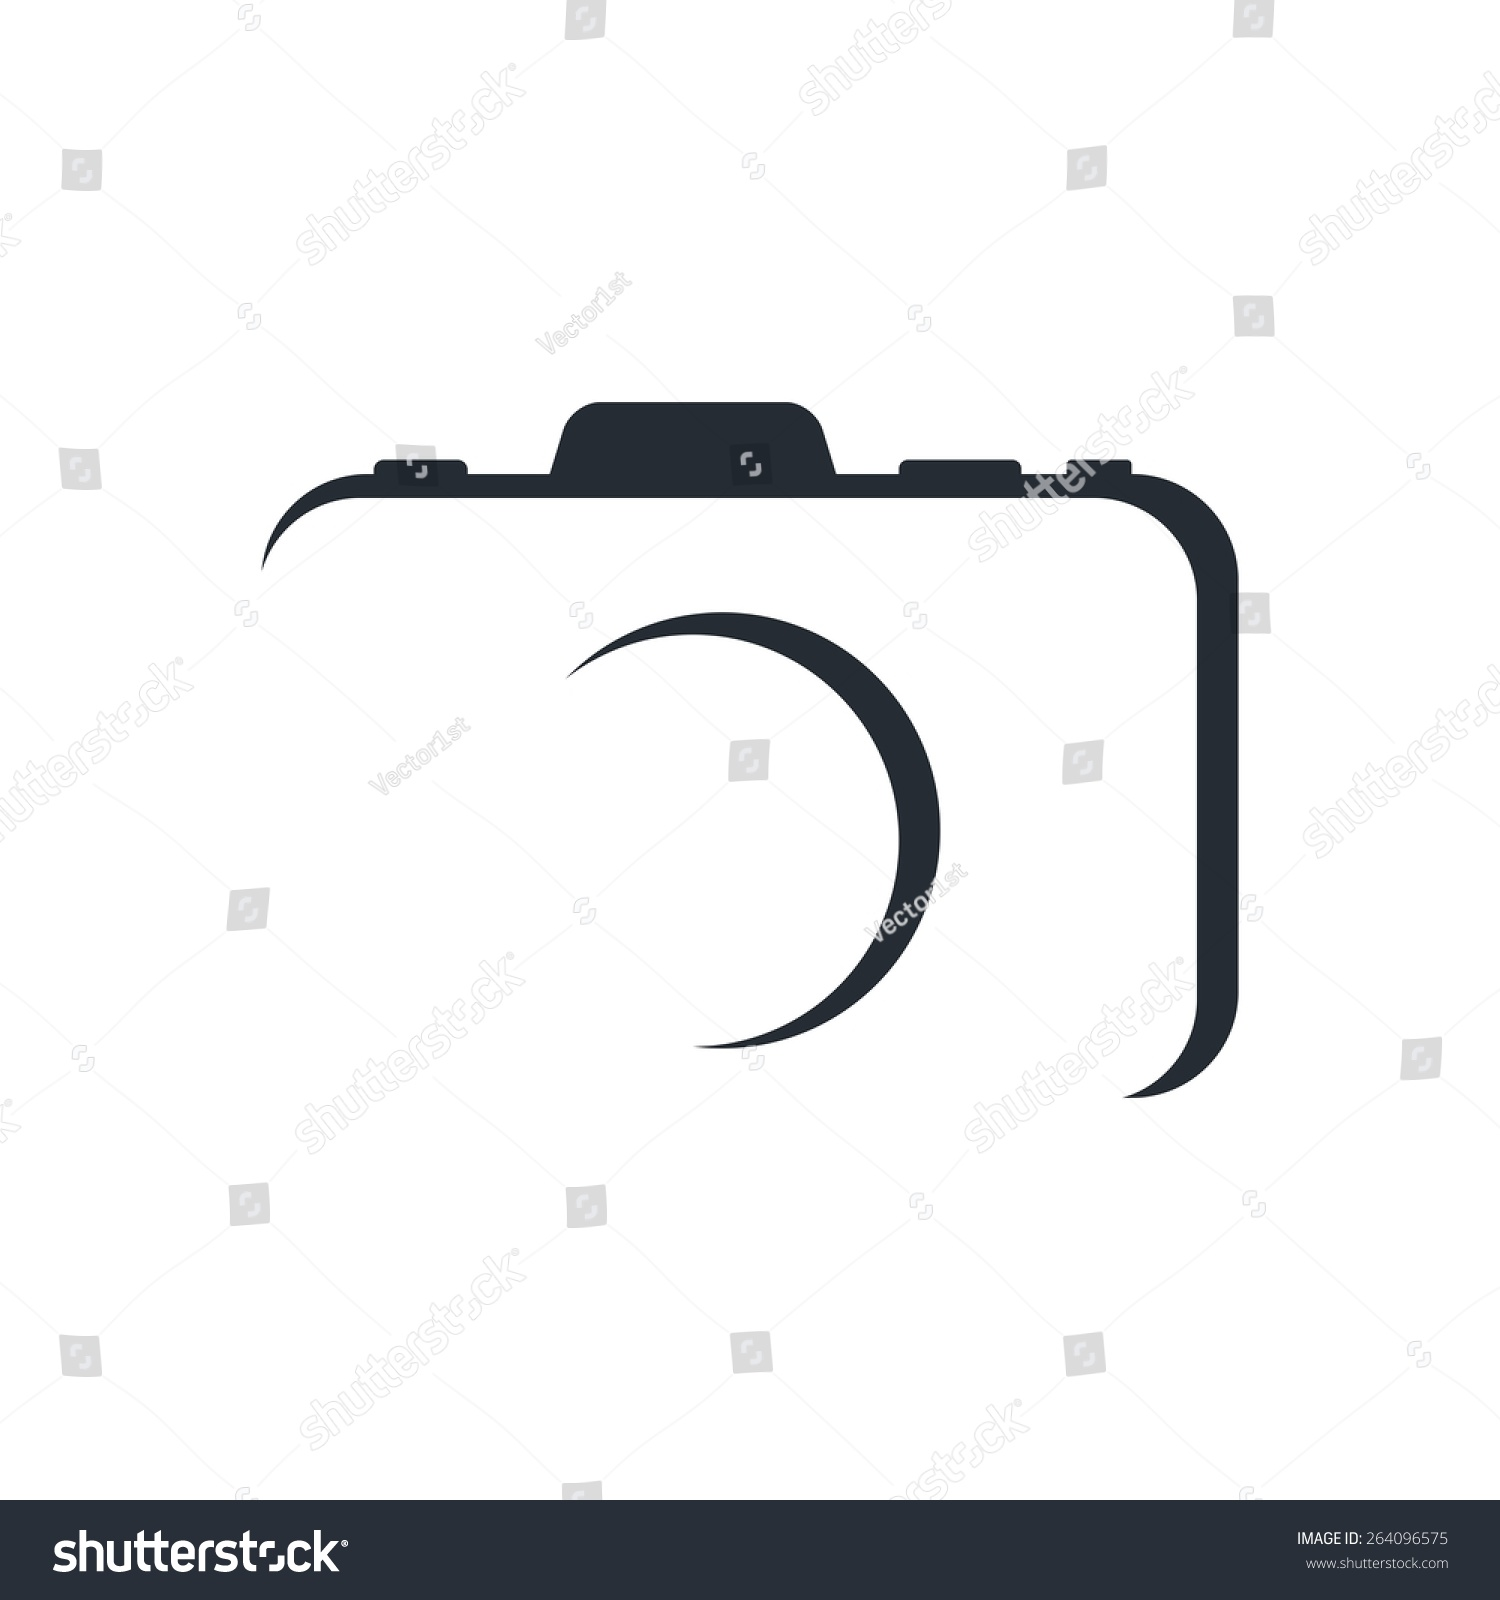 Photography Logo Template Stock Vector 264096575 - Shutterstock